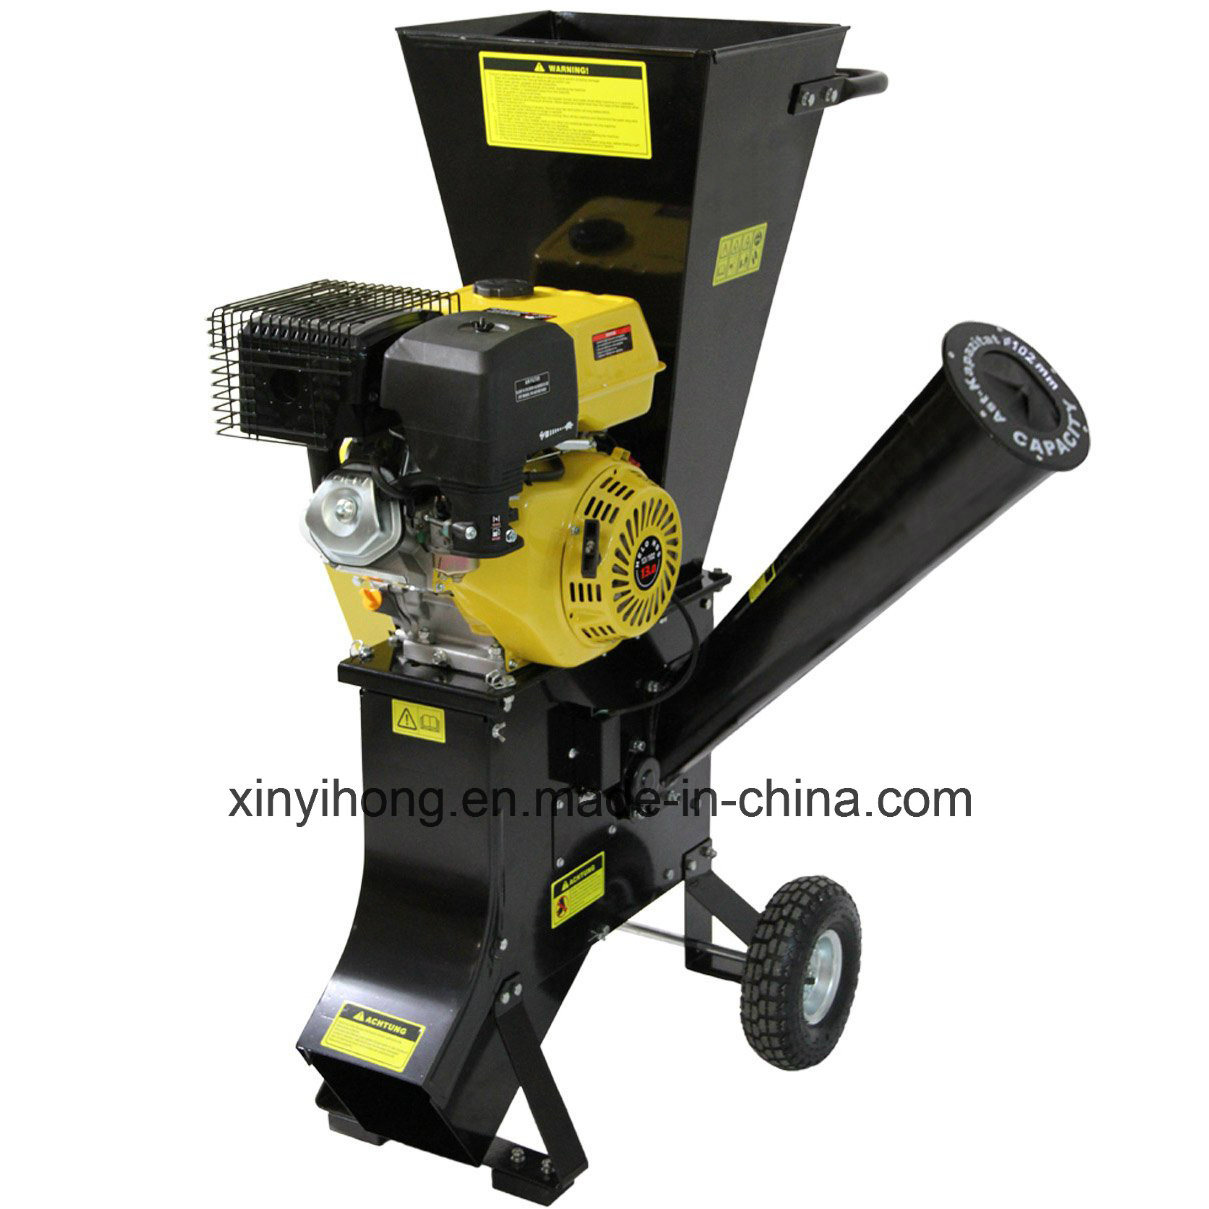 13HP Portable Cutting Machine Wood Chipper/Chipper Shredder